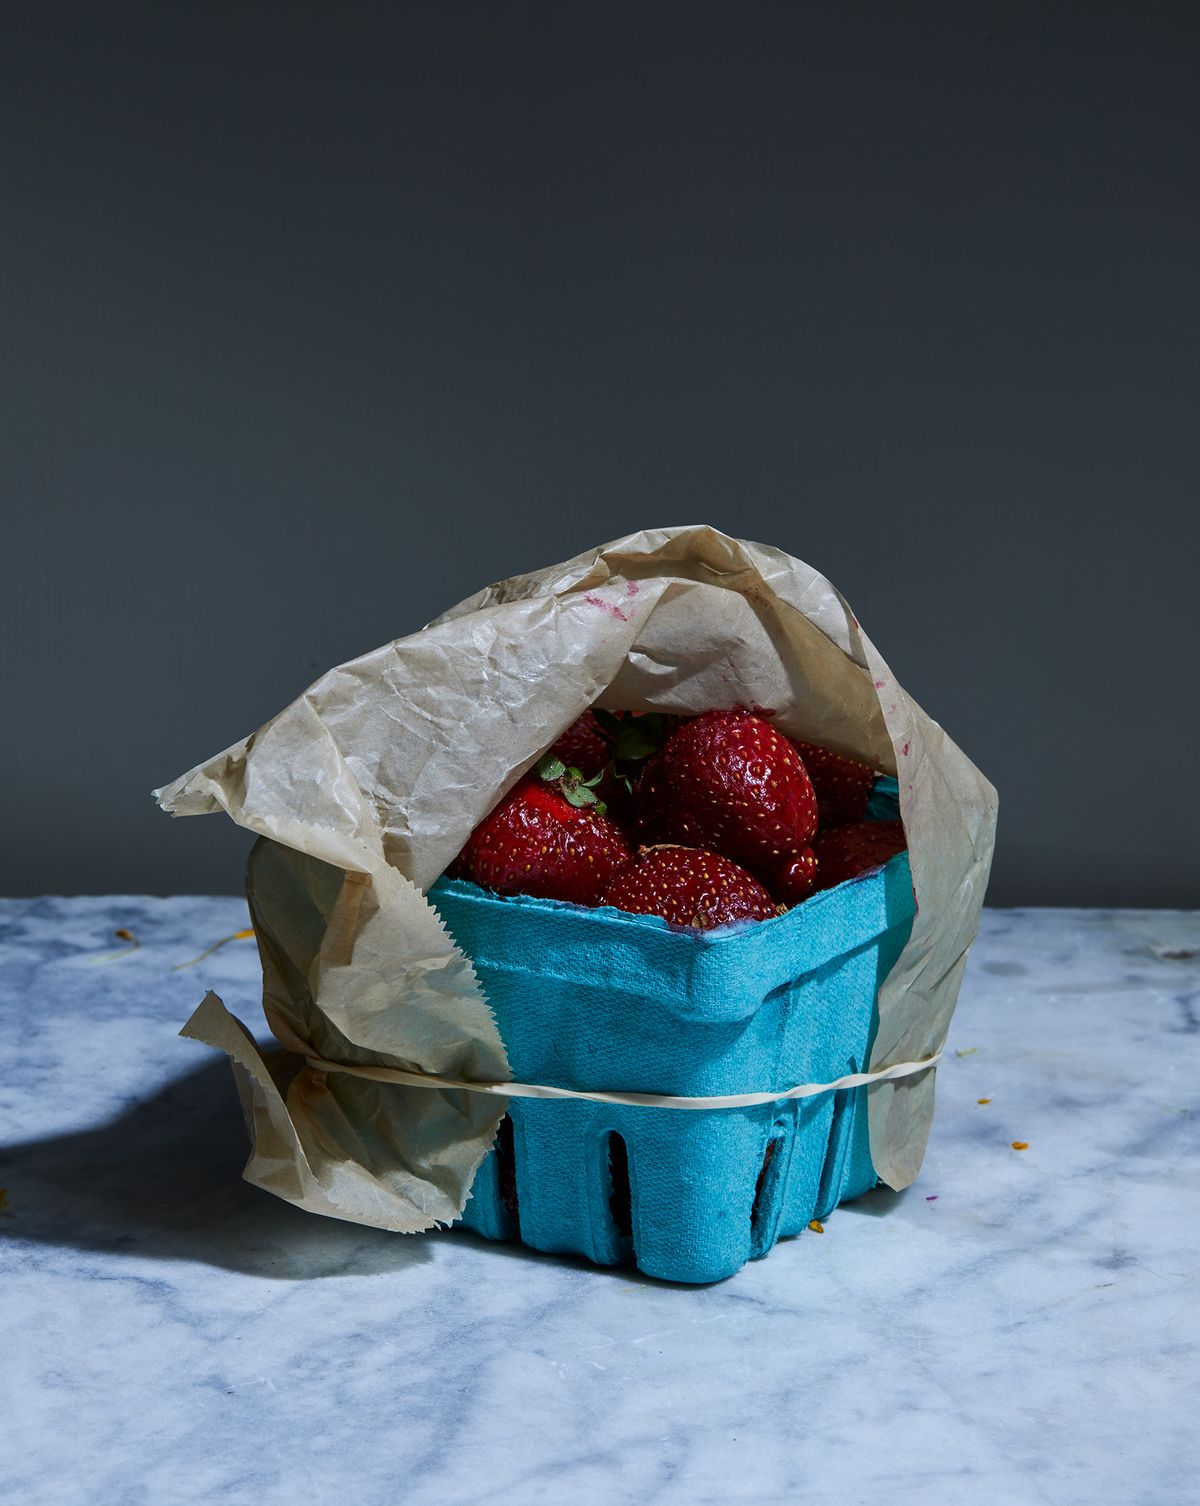 Strawberries_Summer_Stills_18_36255.jpg